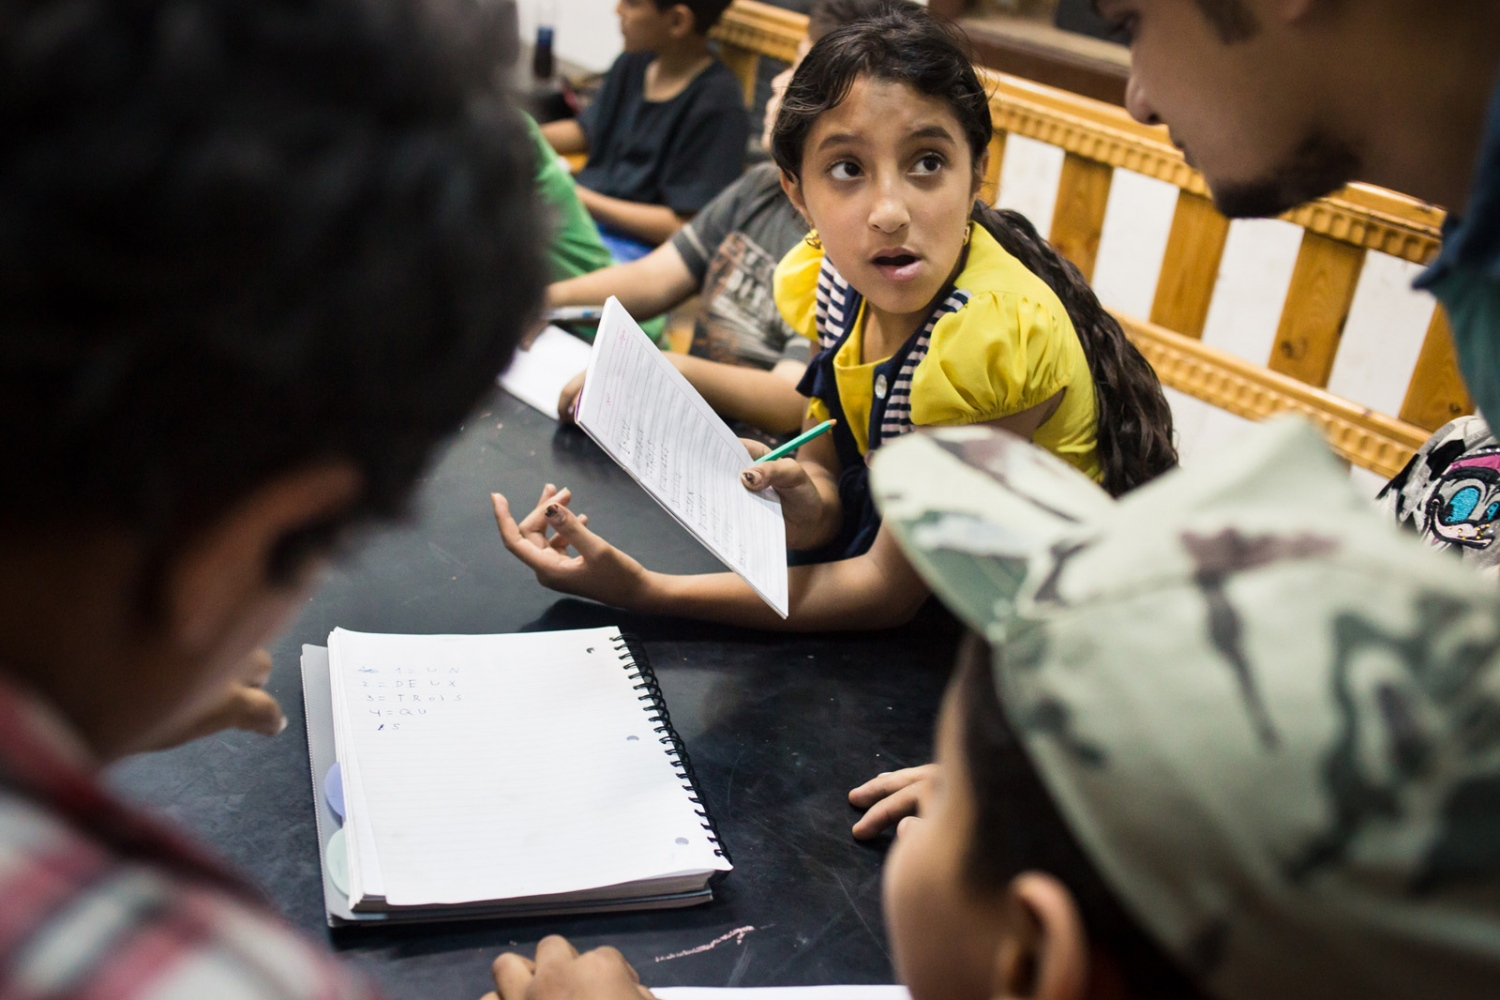 p.p1 {margin: 0.0px 0.0px 0.0px 0.0px; font: 10.0px 'Lucida Grande'} Fatma asks Mostafa to check her work in her notebook during French class. Mish Madrasa is a grassroots volunteer group that provides tutoring and after school activities to poor children in Saft el Laban, a slum neighborhood of Cairo.